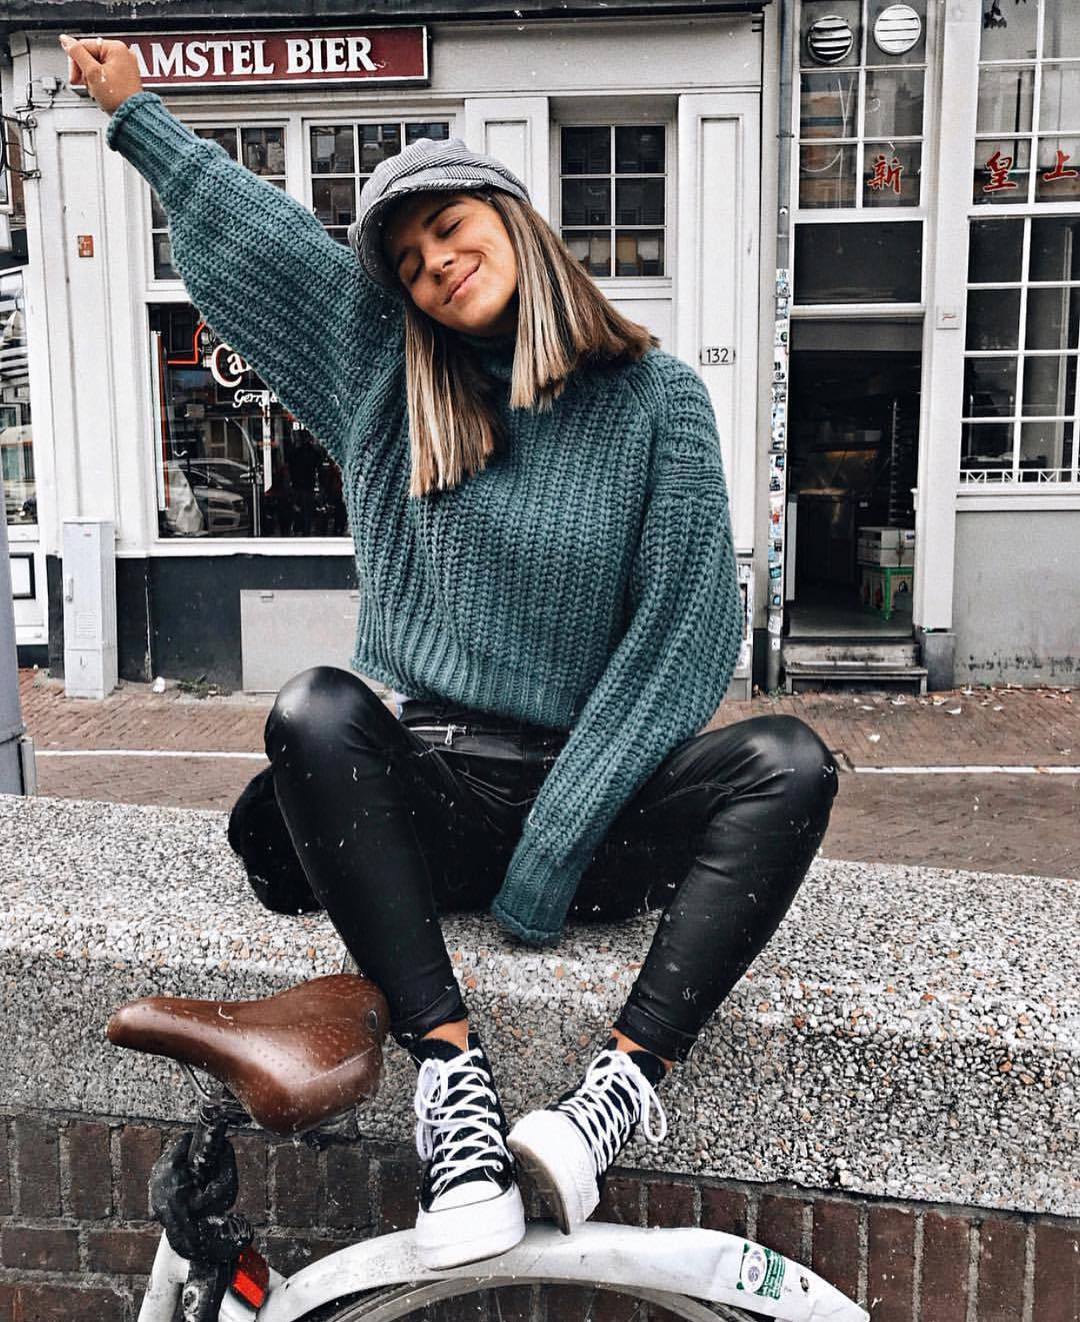 Hipster Basics For Fall: Oversized Knitwear, Denim And Chunky Kicks 2021